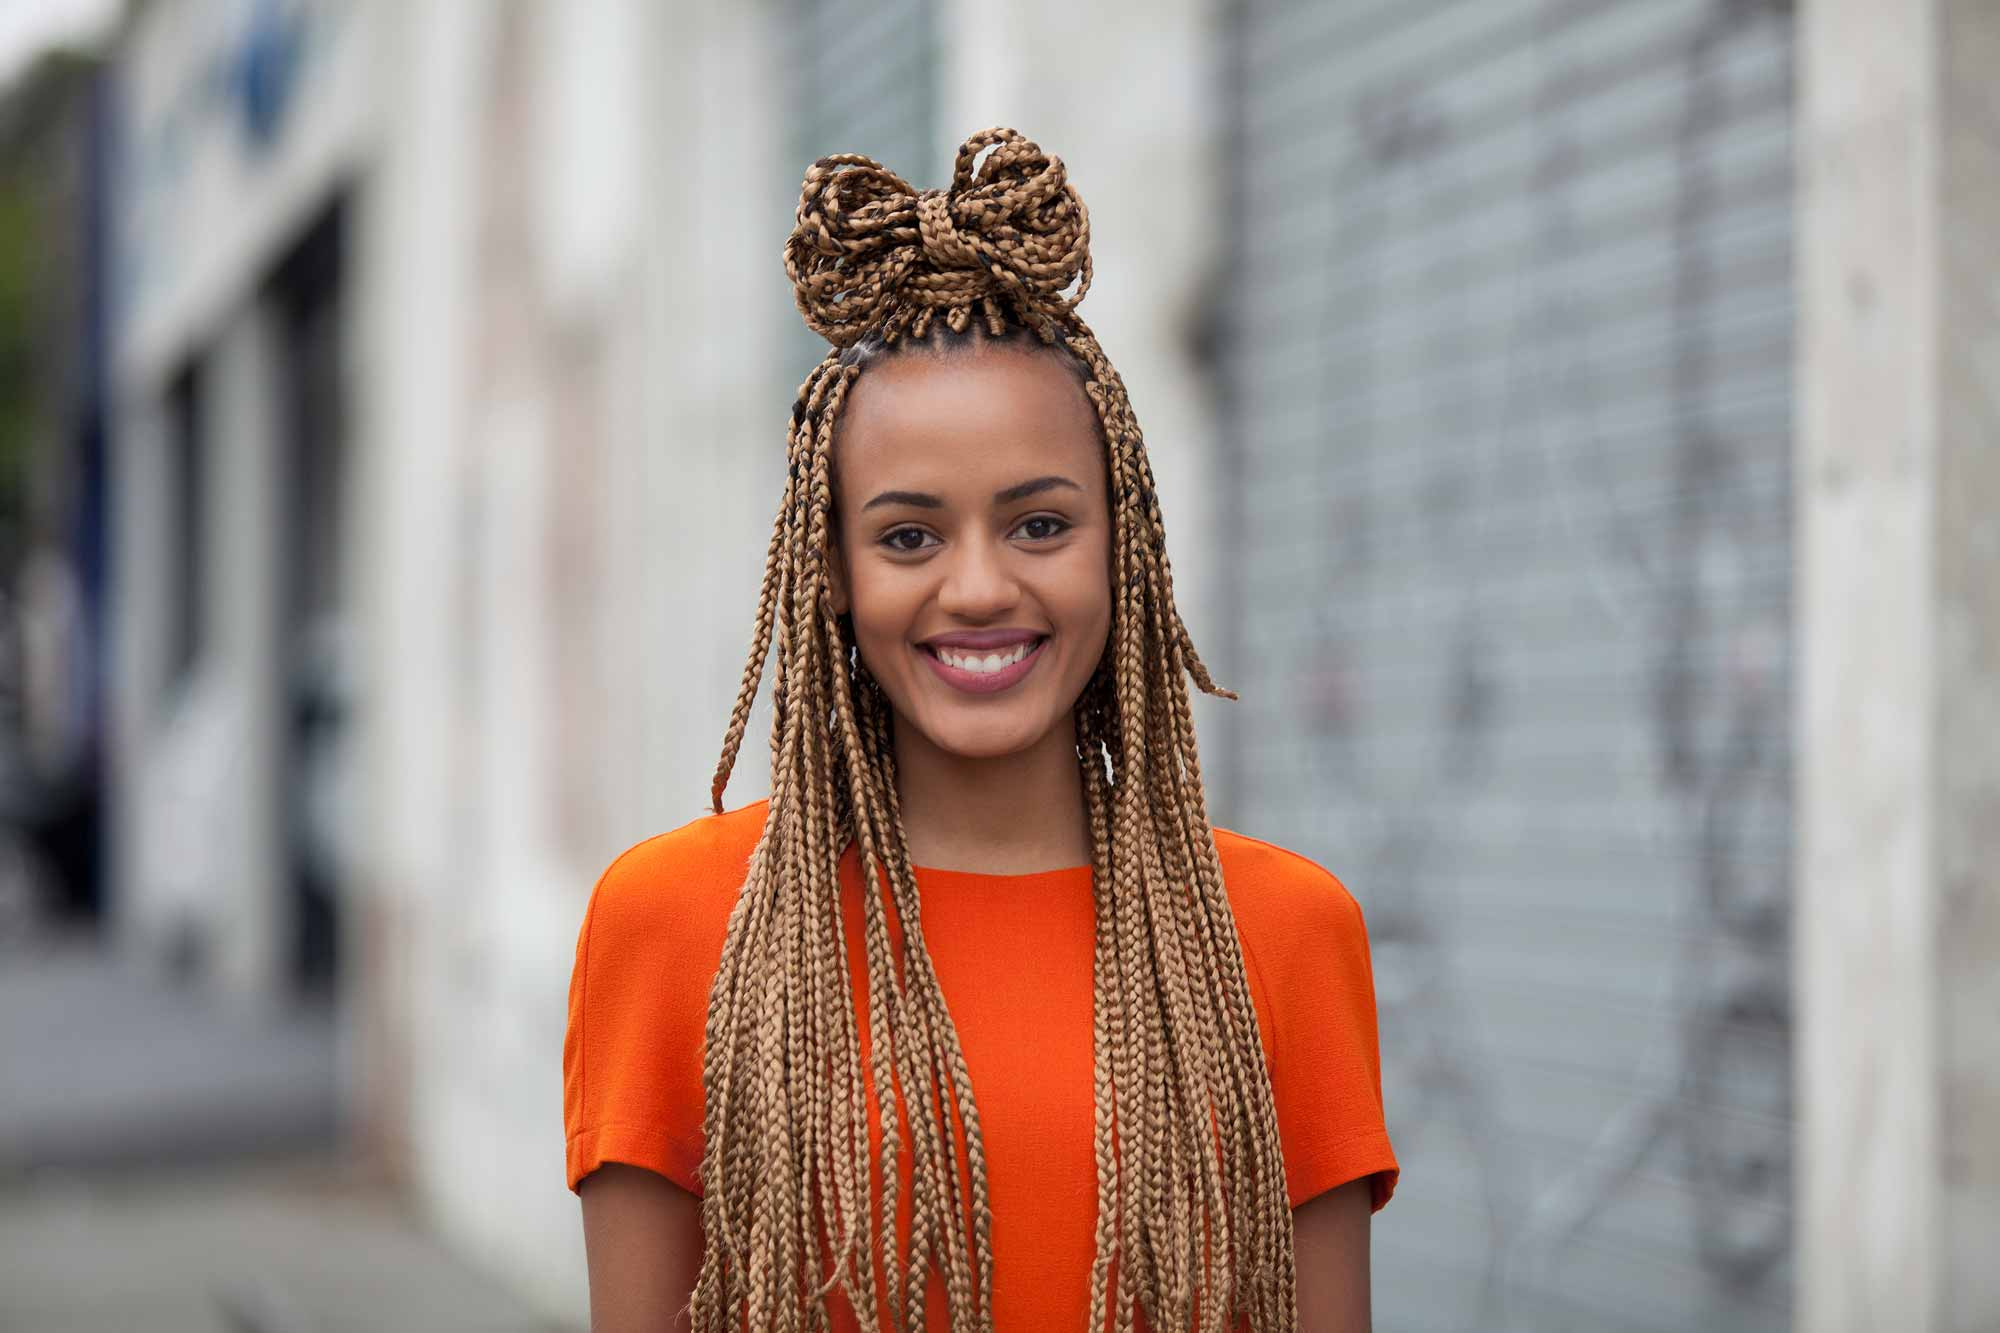 Most Current Box Braided Bun Hairstyles Inside 10 Super Cute Styles With Box Braids To Wear Now (View 20 of 20)